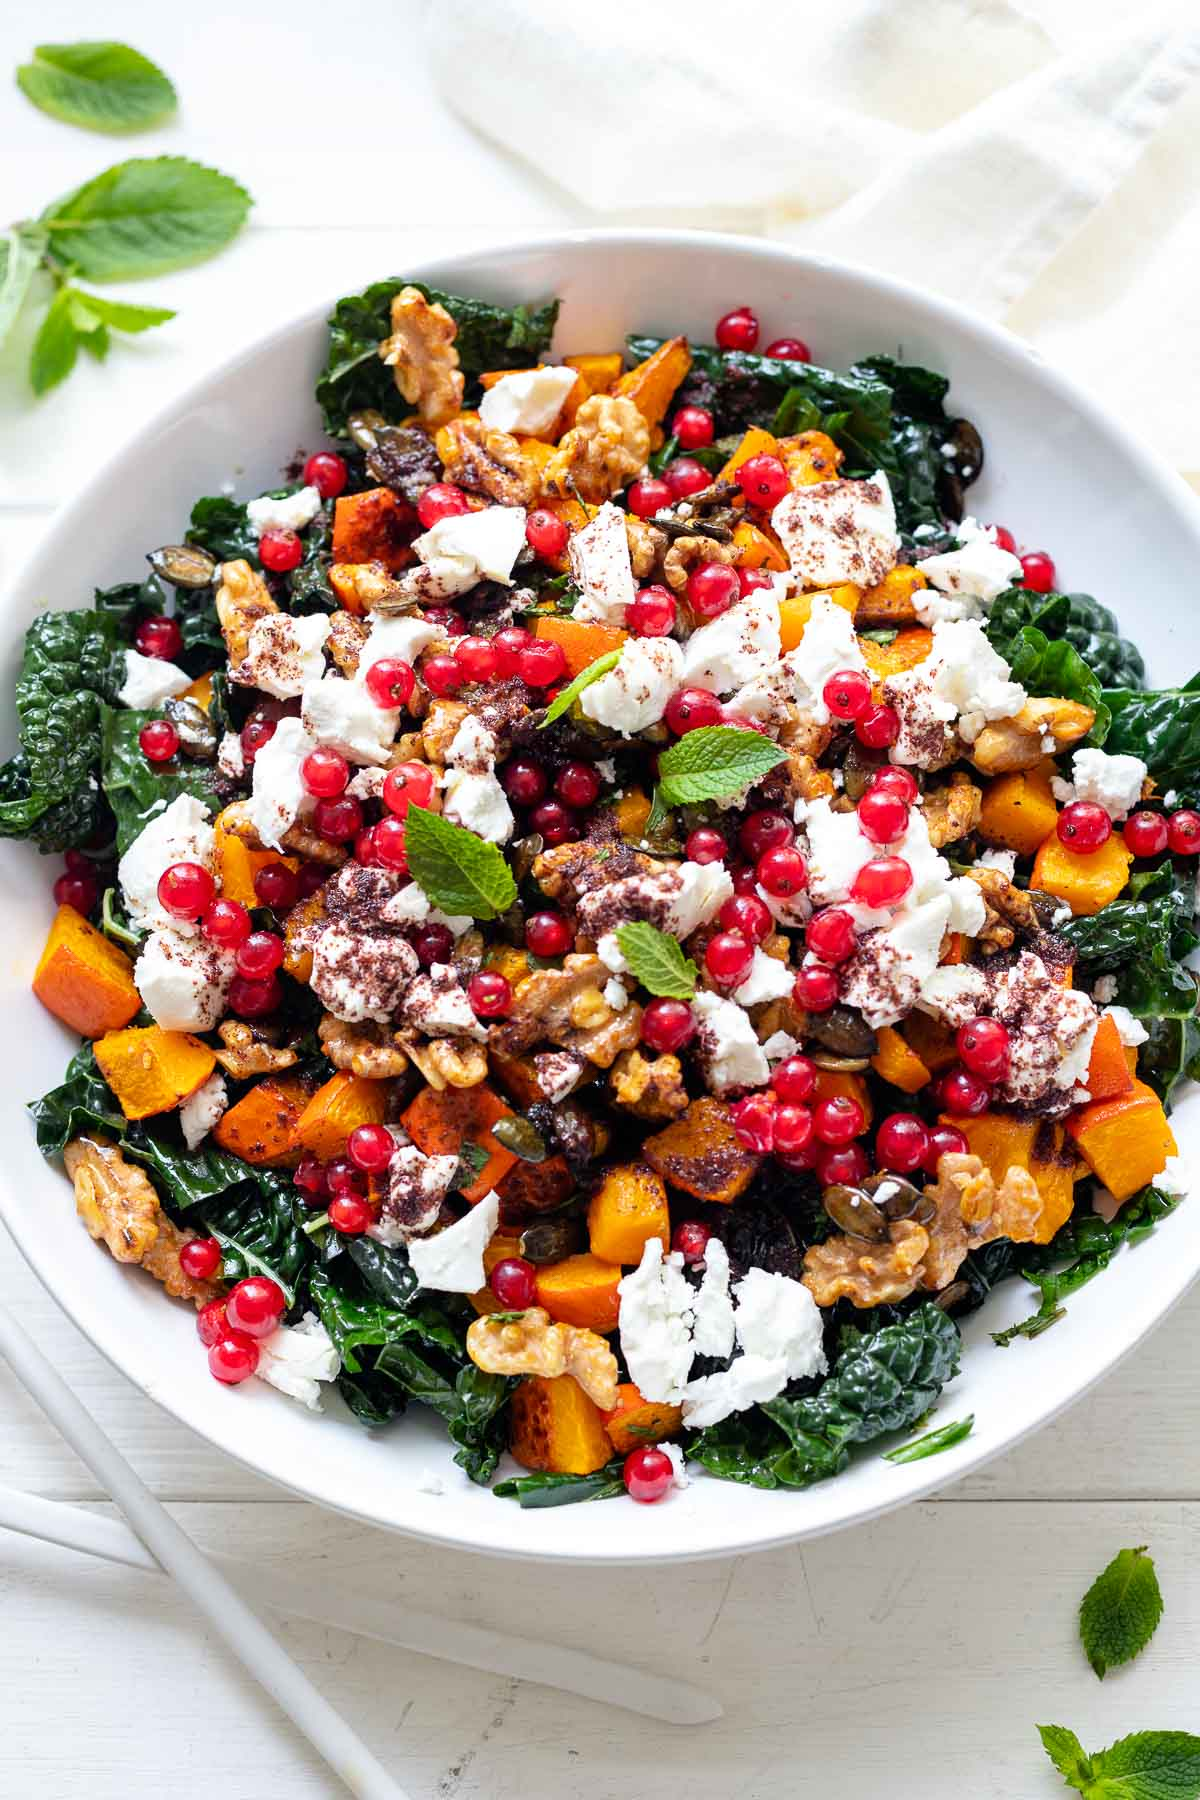 Roasted Pumpkin with Tuscan Kale Salad with Goat Cheese and Candied Walnuts